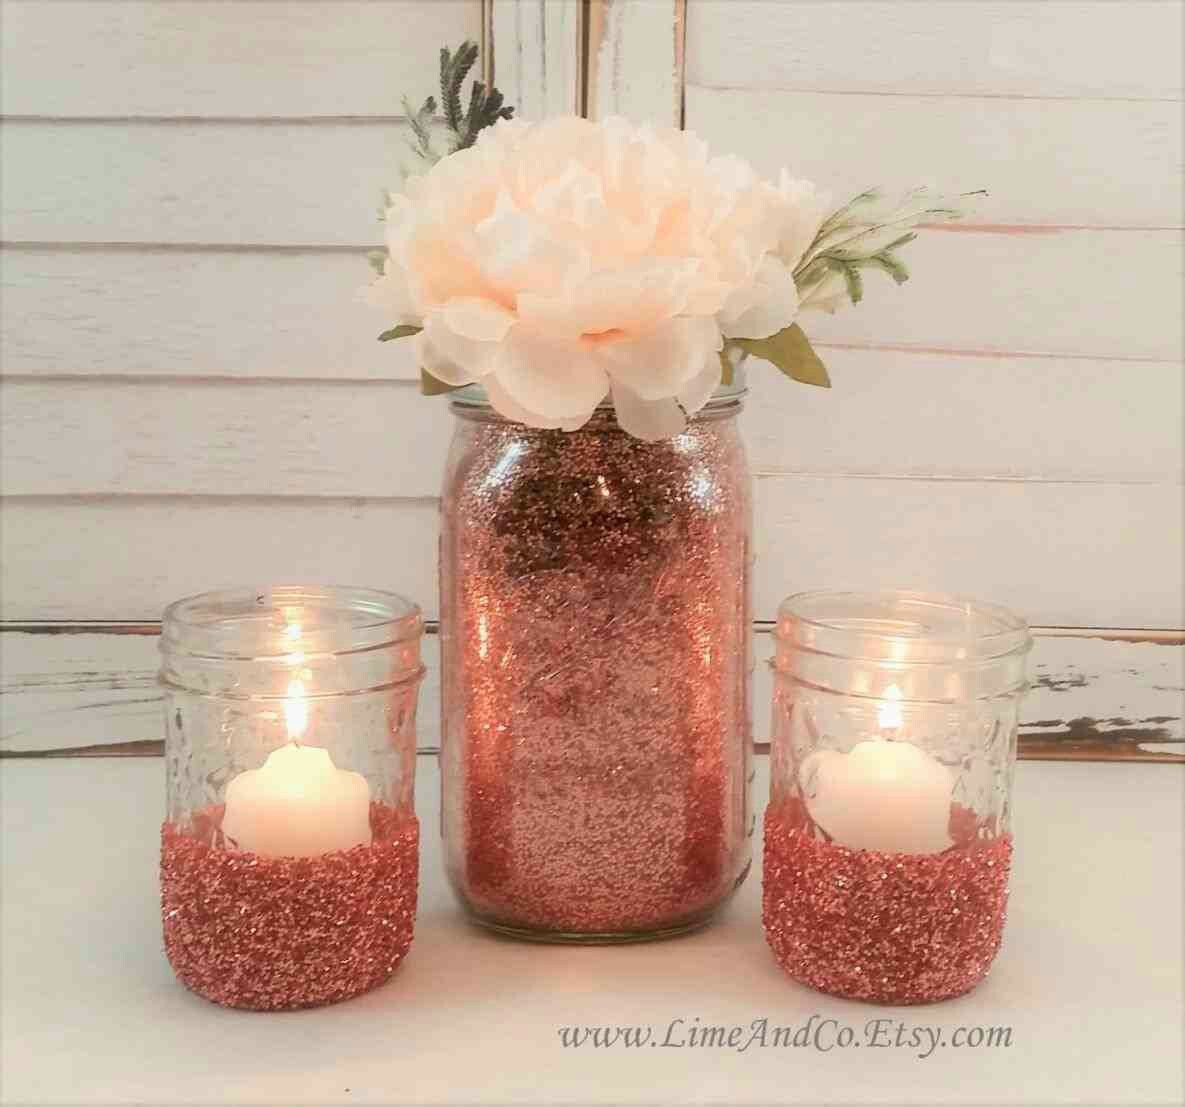 Pin By Esther On Wedding Center Pieces Rose Gold Party Rose Gold Baby Shower Rose Gold Centerpiece